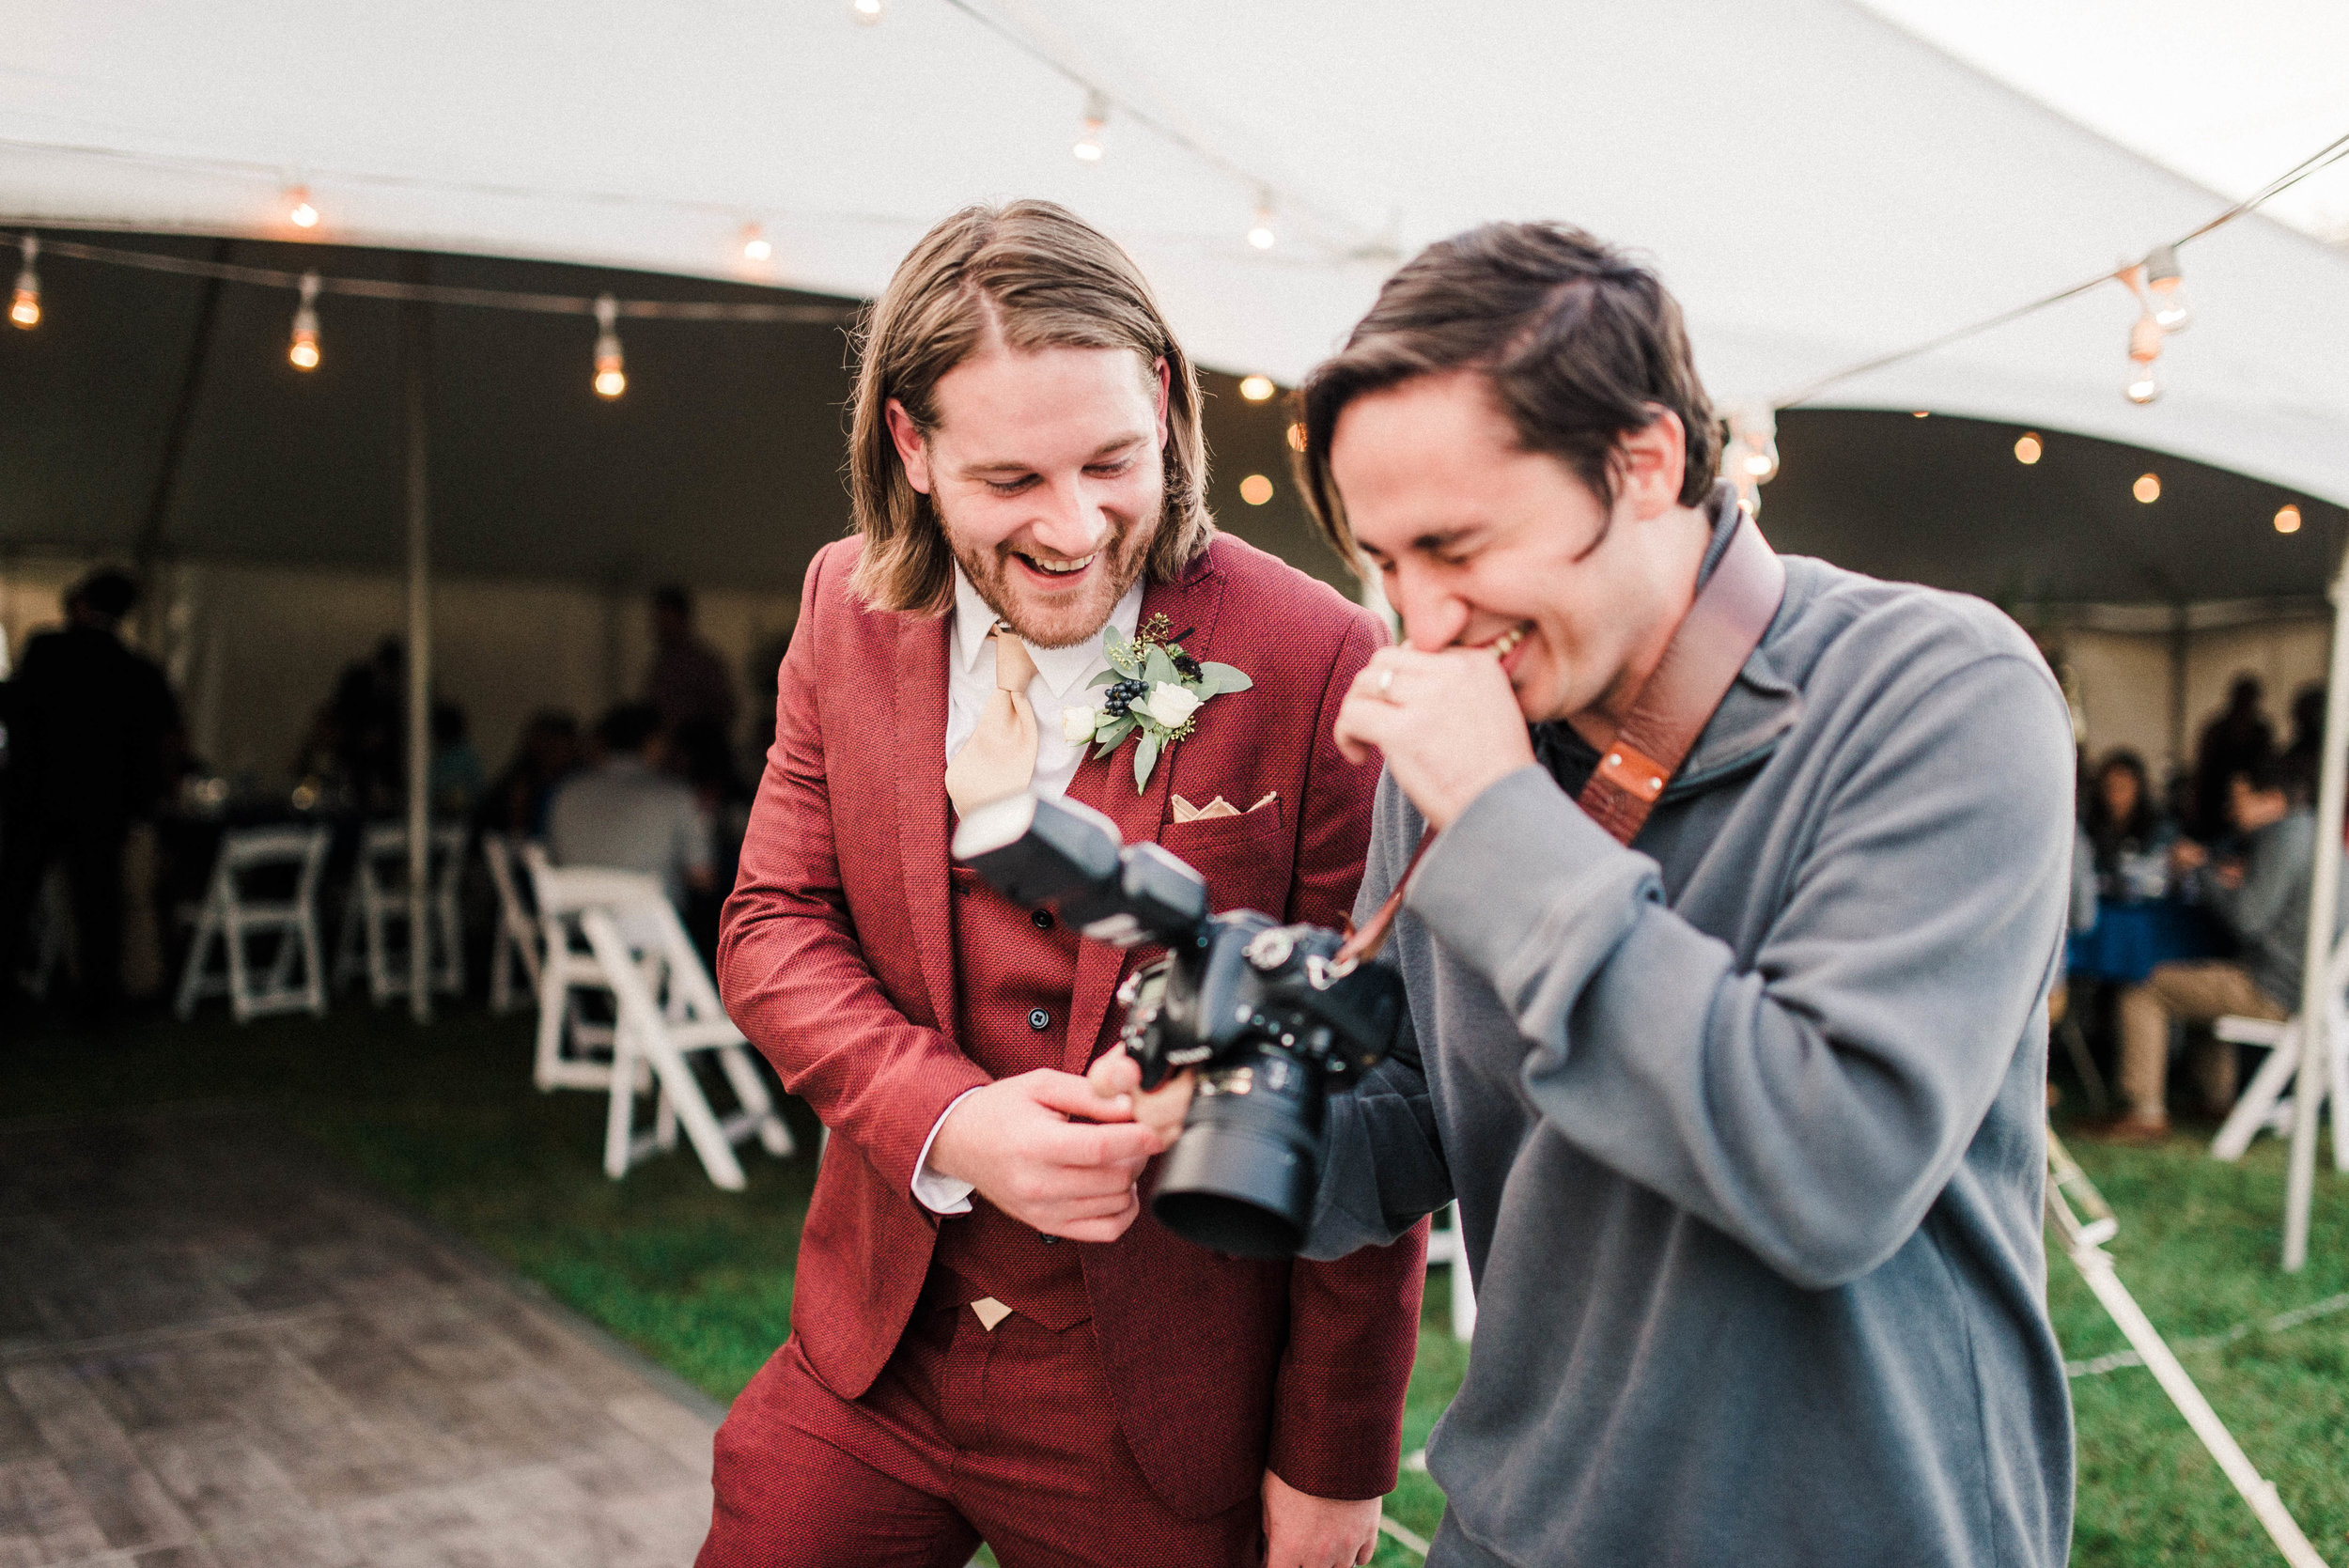 Mike and one of our awesome grooms cracking up after the garter toss.